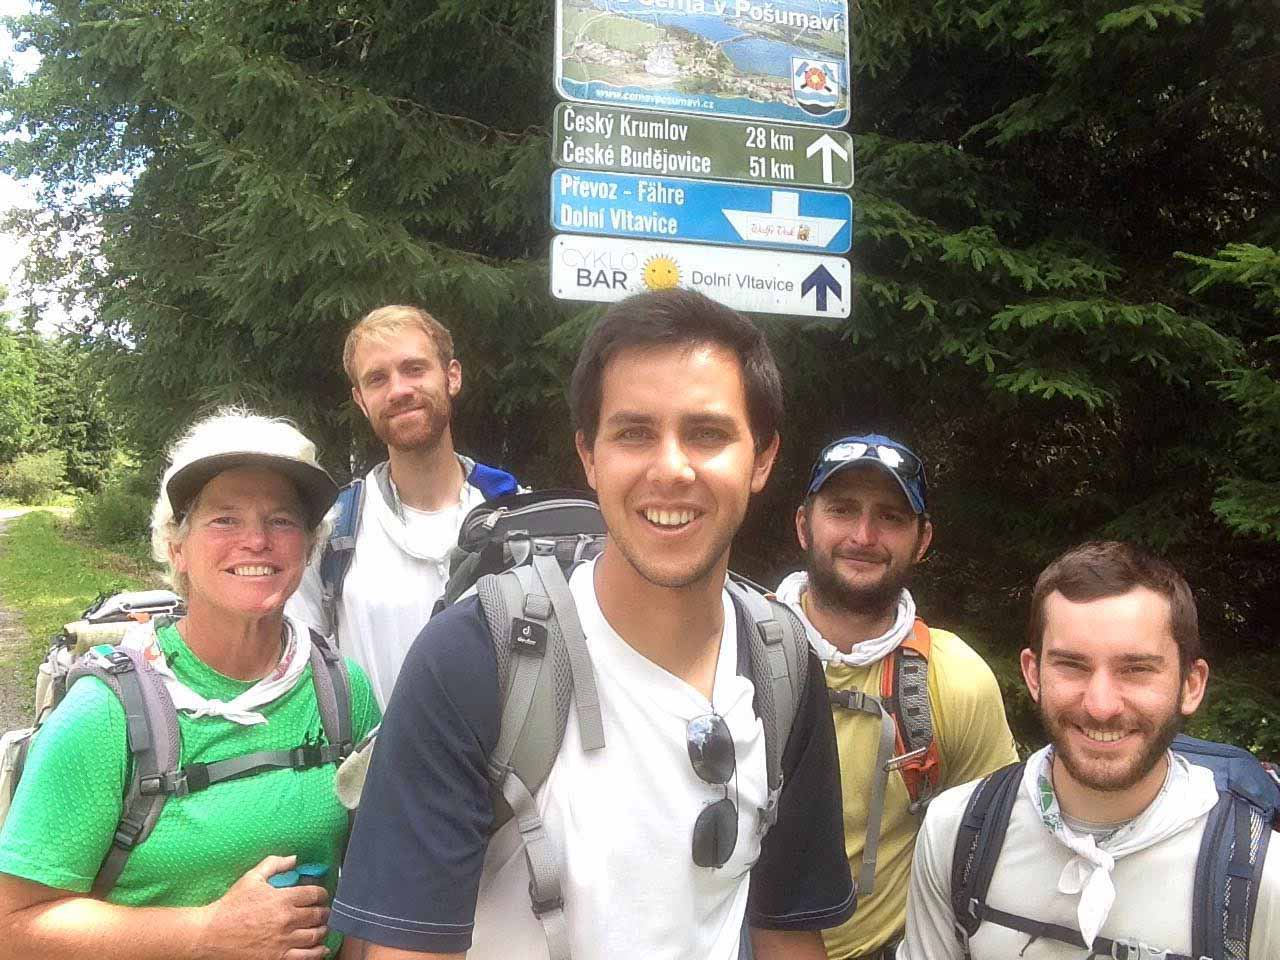 Taking a break on a road in Czech Republic, a group making a walking pilgrimage from Rome to Krakow, Poland, in time for World Youth Day includes (from left) Ann Sieben, Nick Zimmerman, Rafael Maturo, Ricardo Simmonds and Andrew Dierkes.